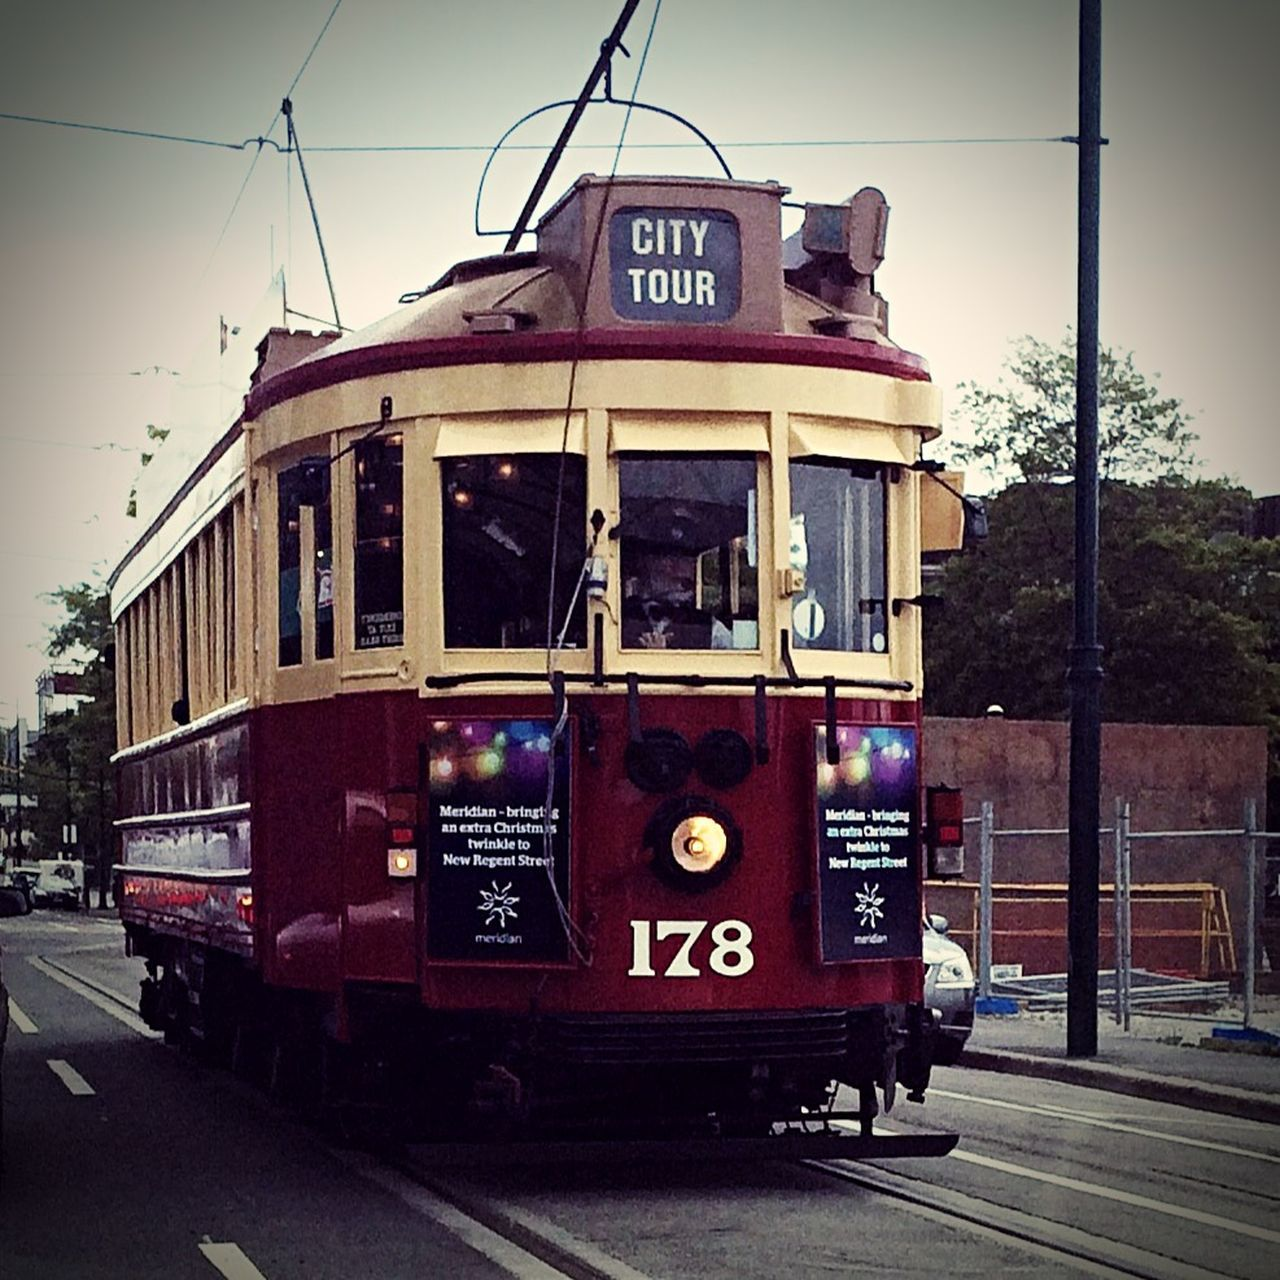 Tram Christchurchnz Christchurch Earthquake Tour City Tour New Zealand